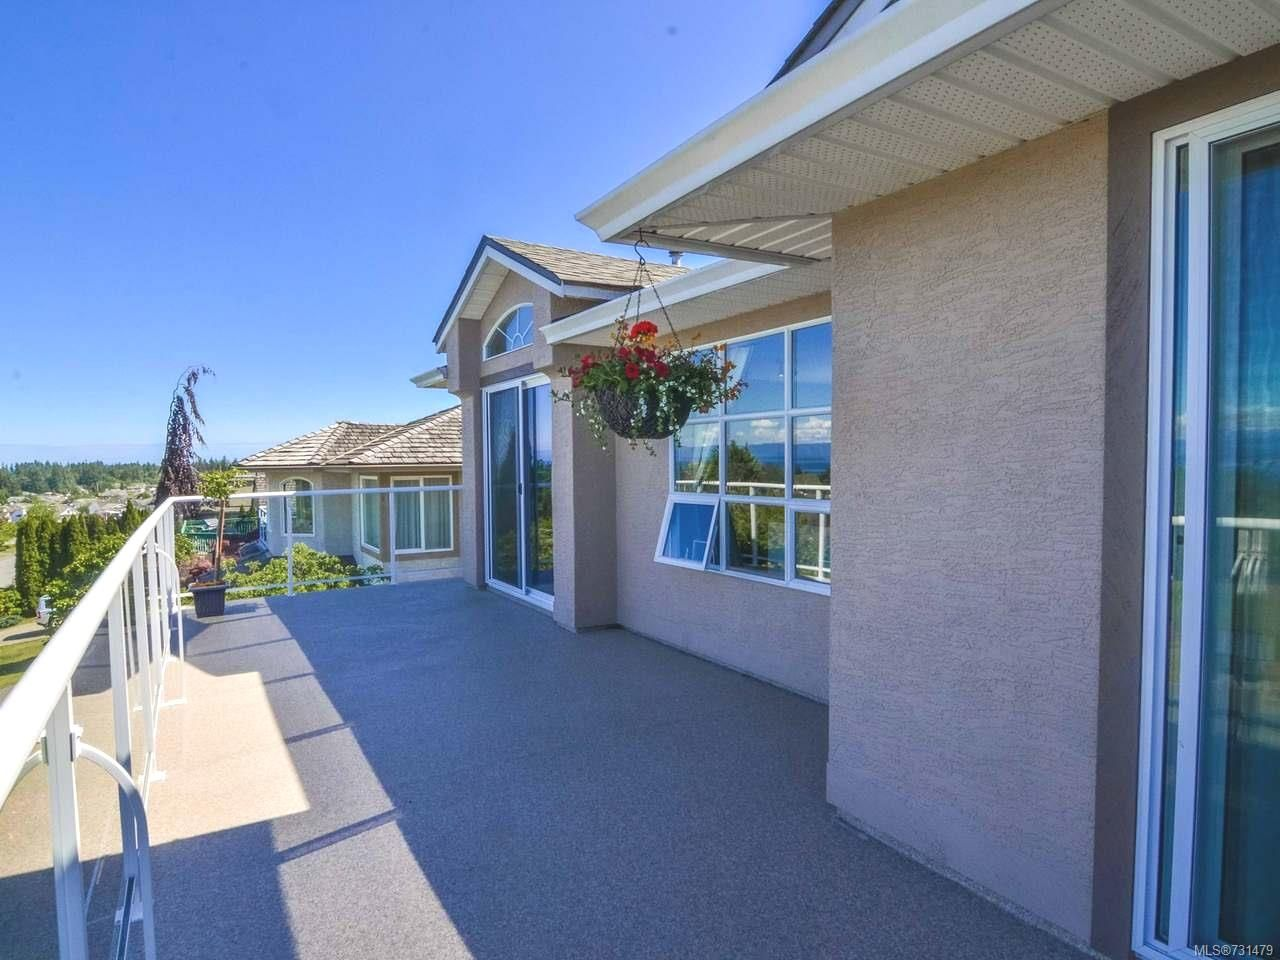 Photo 52: Photos: 753 Bowen Dr in CAMPBELL RIVER: CR Willow Point House for sale (Campbell River)  : MLS®# 731479